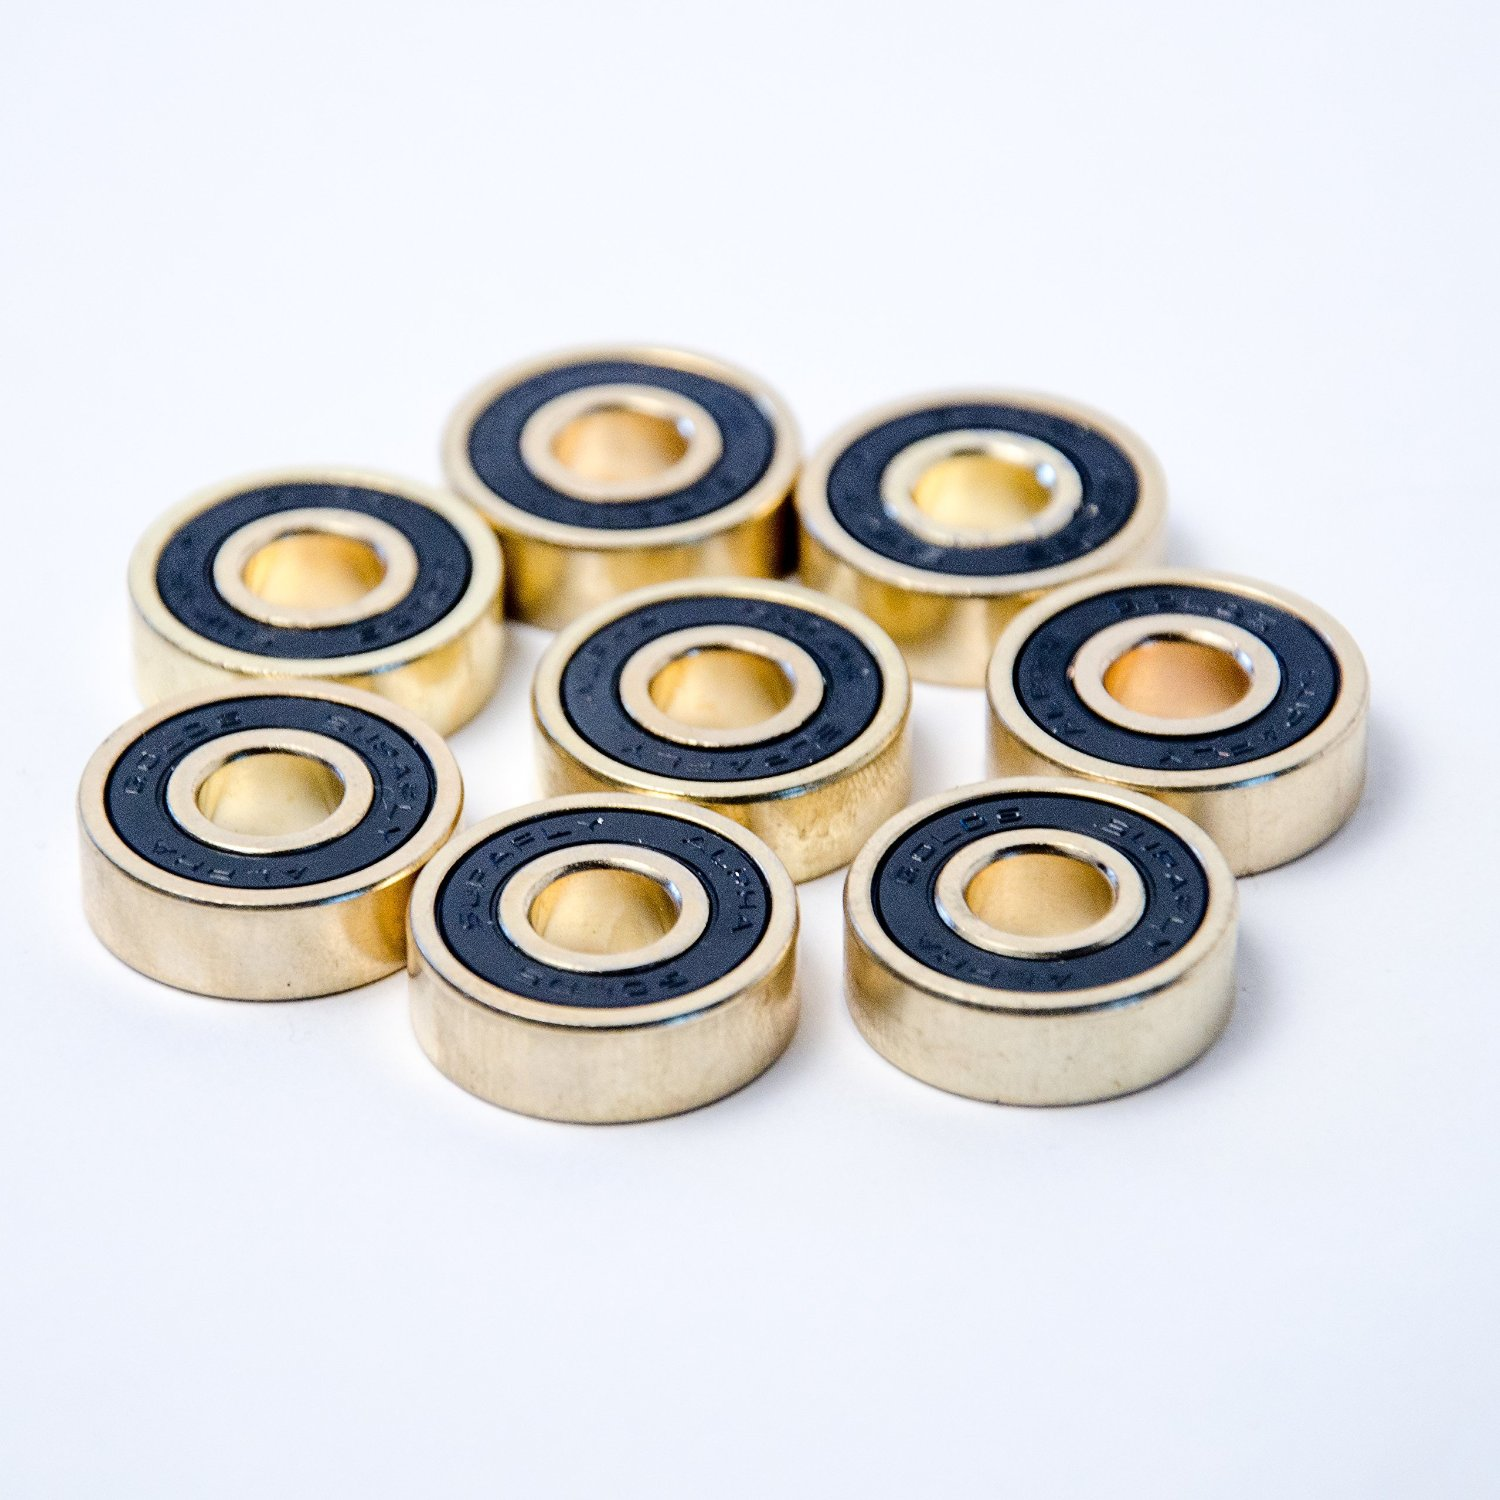 SupaFly Skateboard Company Alpha Agressive Skateboard Bearings